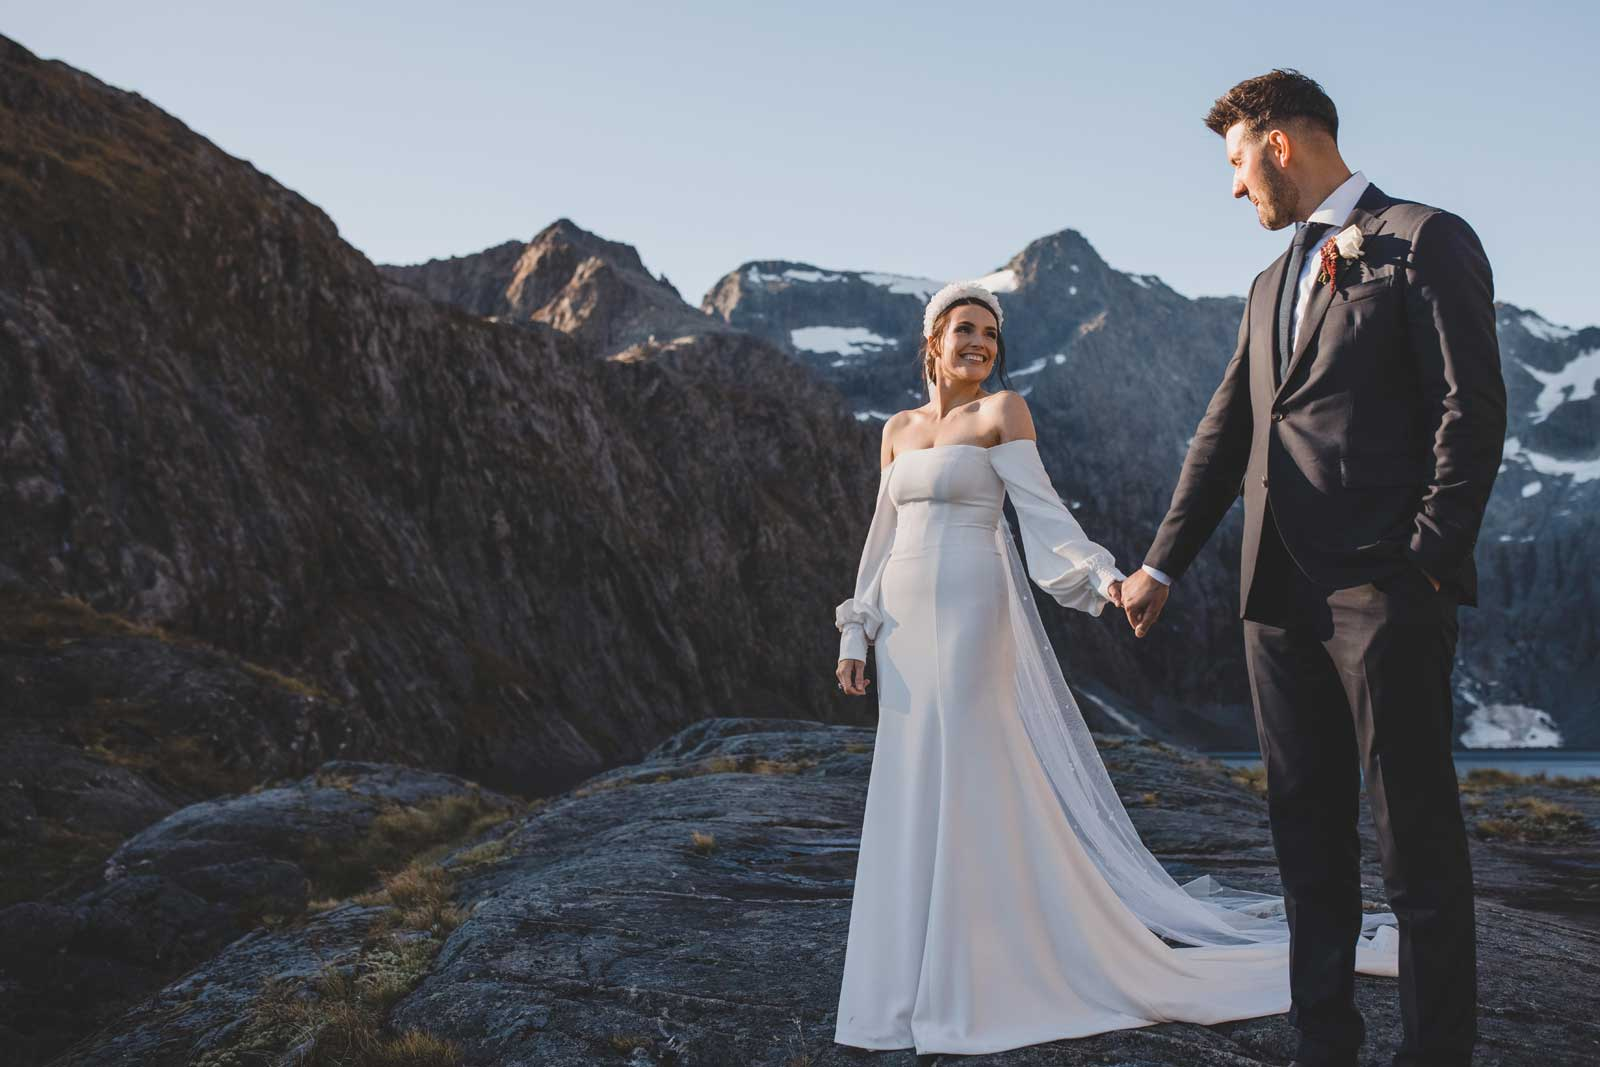 01 Bride And Groom Mountainscape